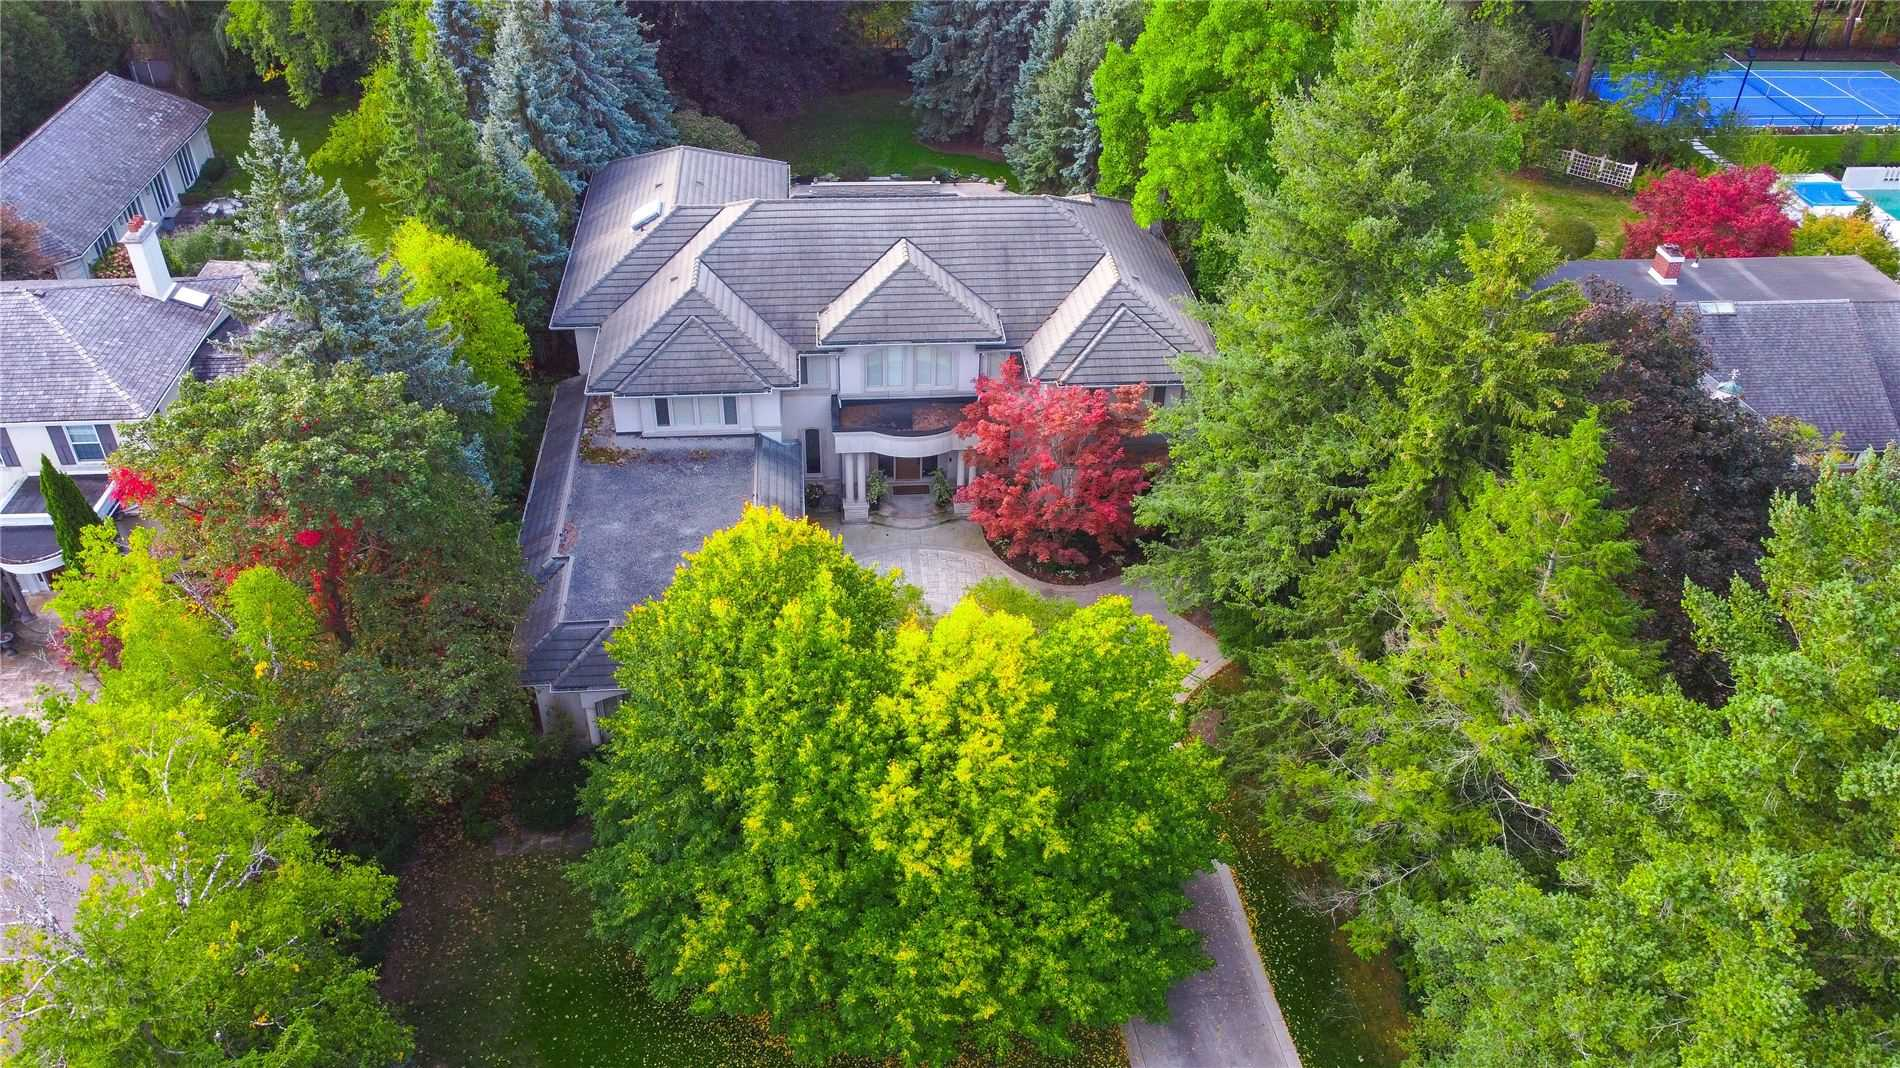 29 Country Lane, Toronto, M2L 1E1